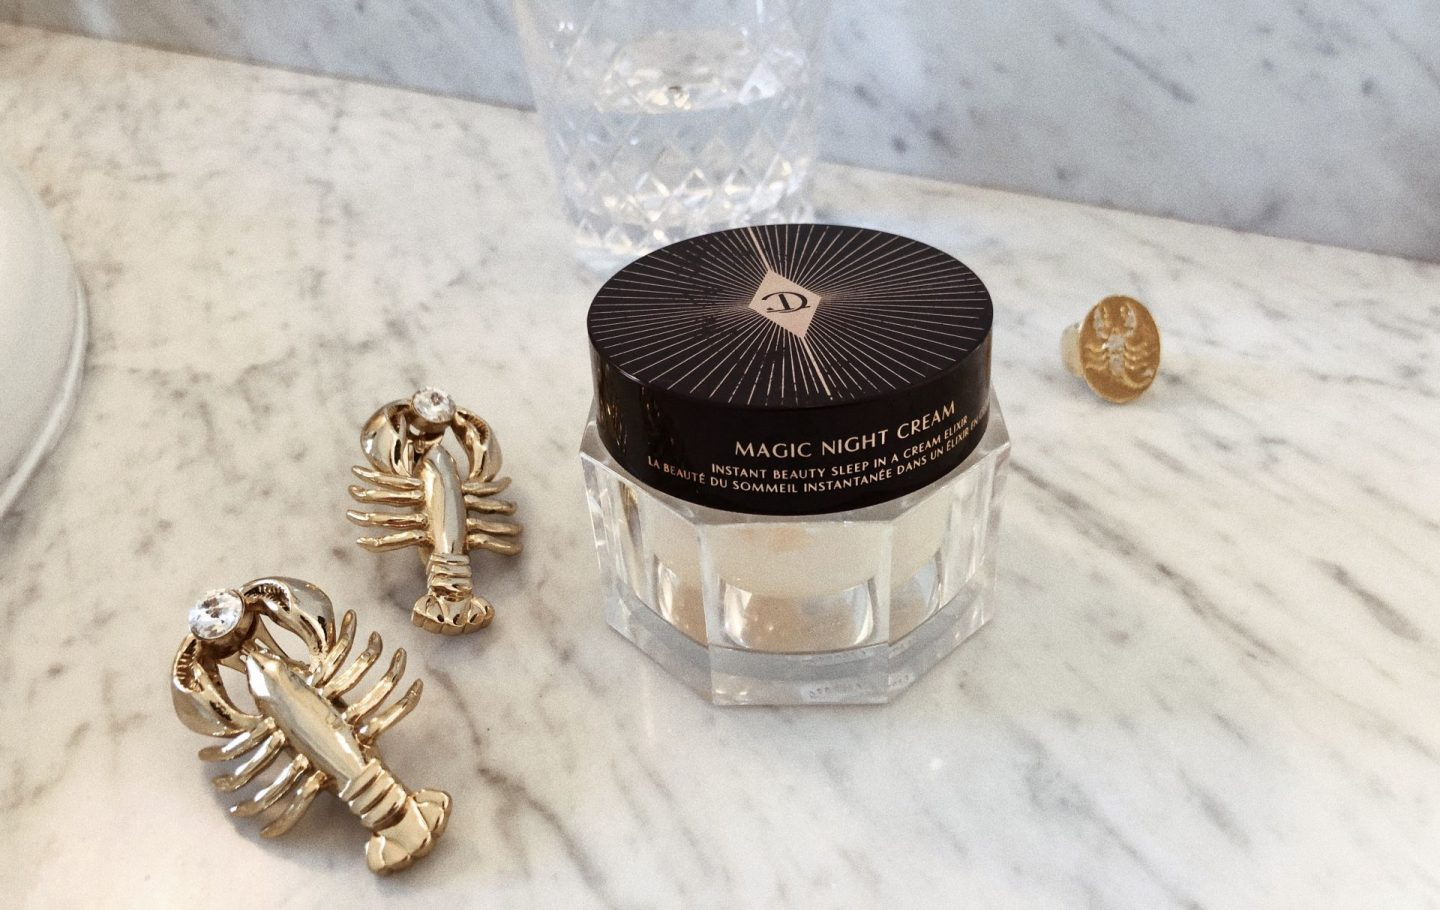 Beauty Products to Brighten Lockdown Charlotte Tilbury Magic Night Cream